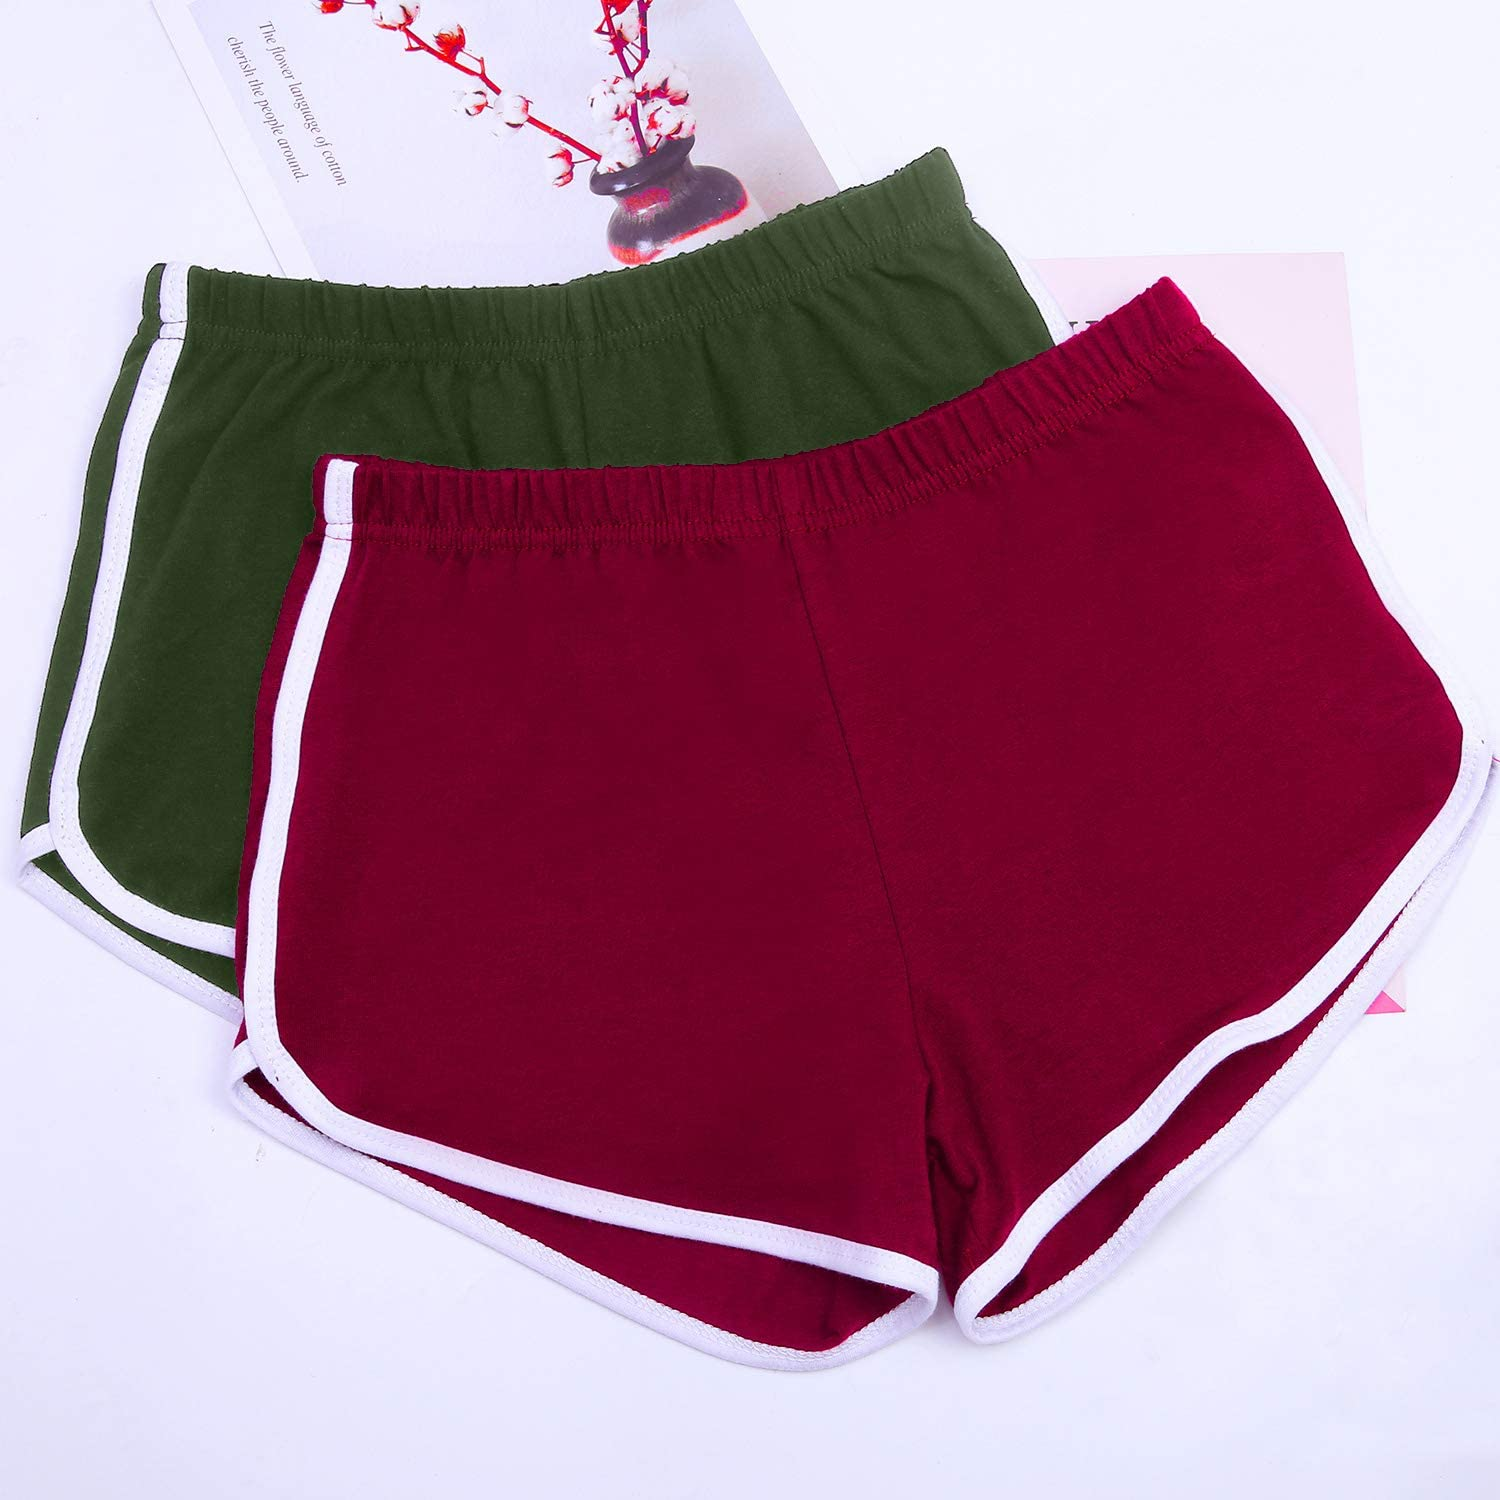 URATOT 2 Pack Cotton Sport Shorts Yoga Dance Short Pants Summer Athletic Shorts Army Green, Jujube Red